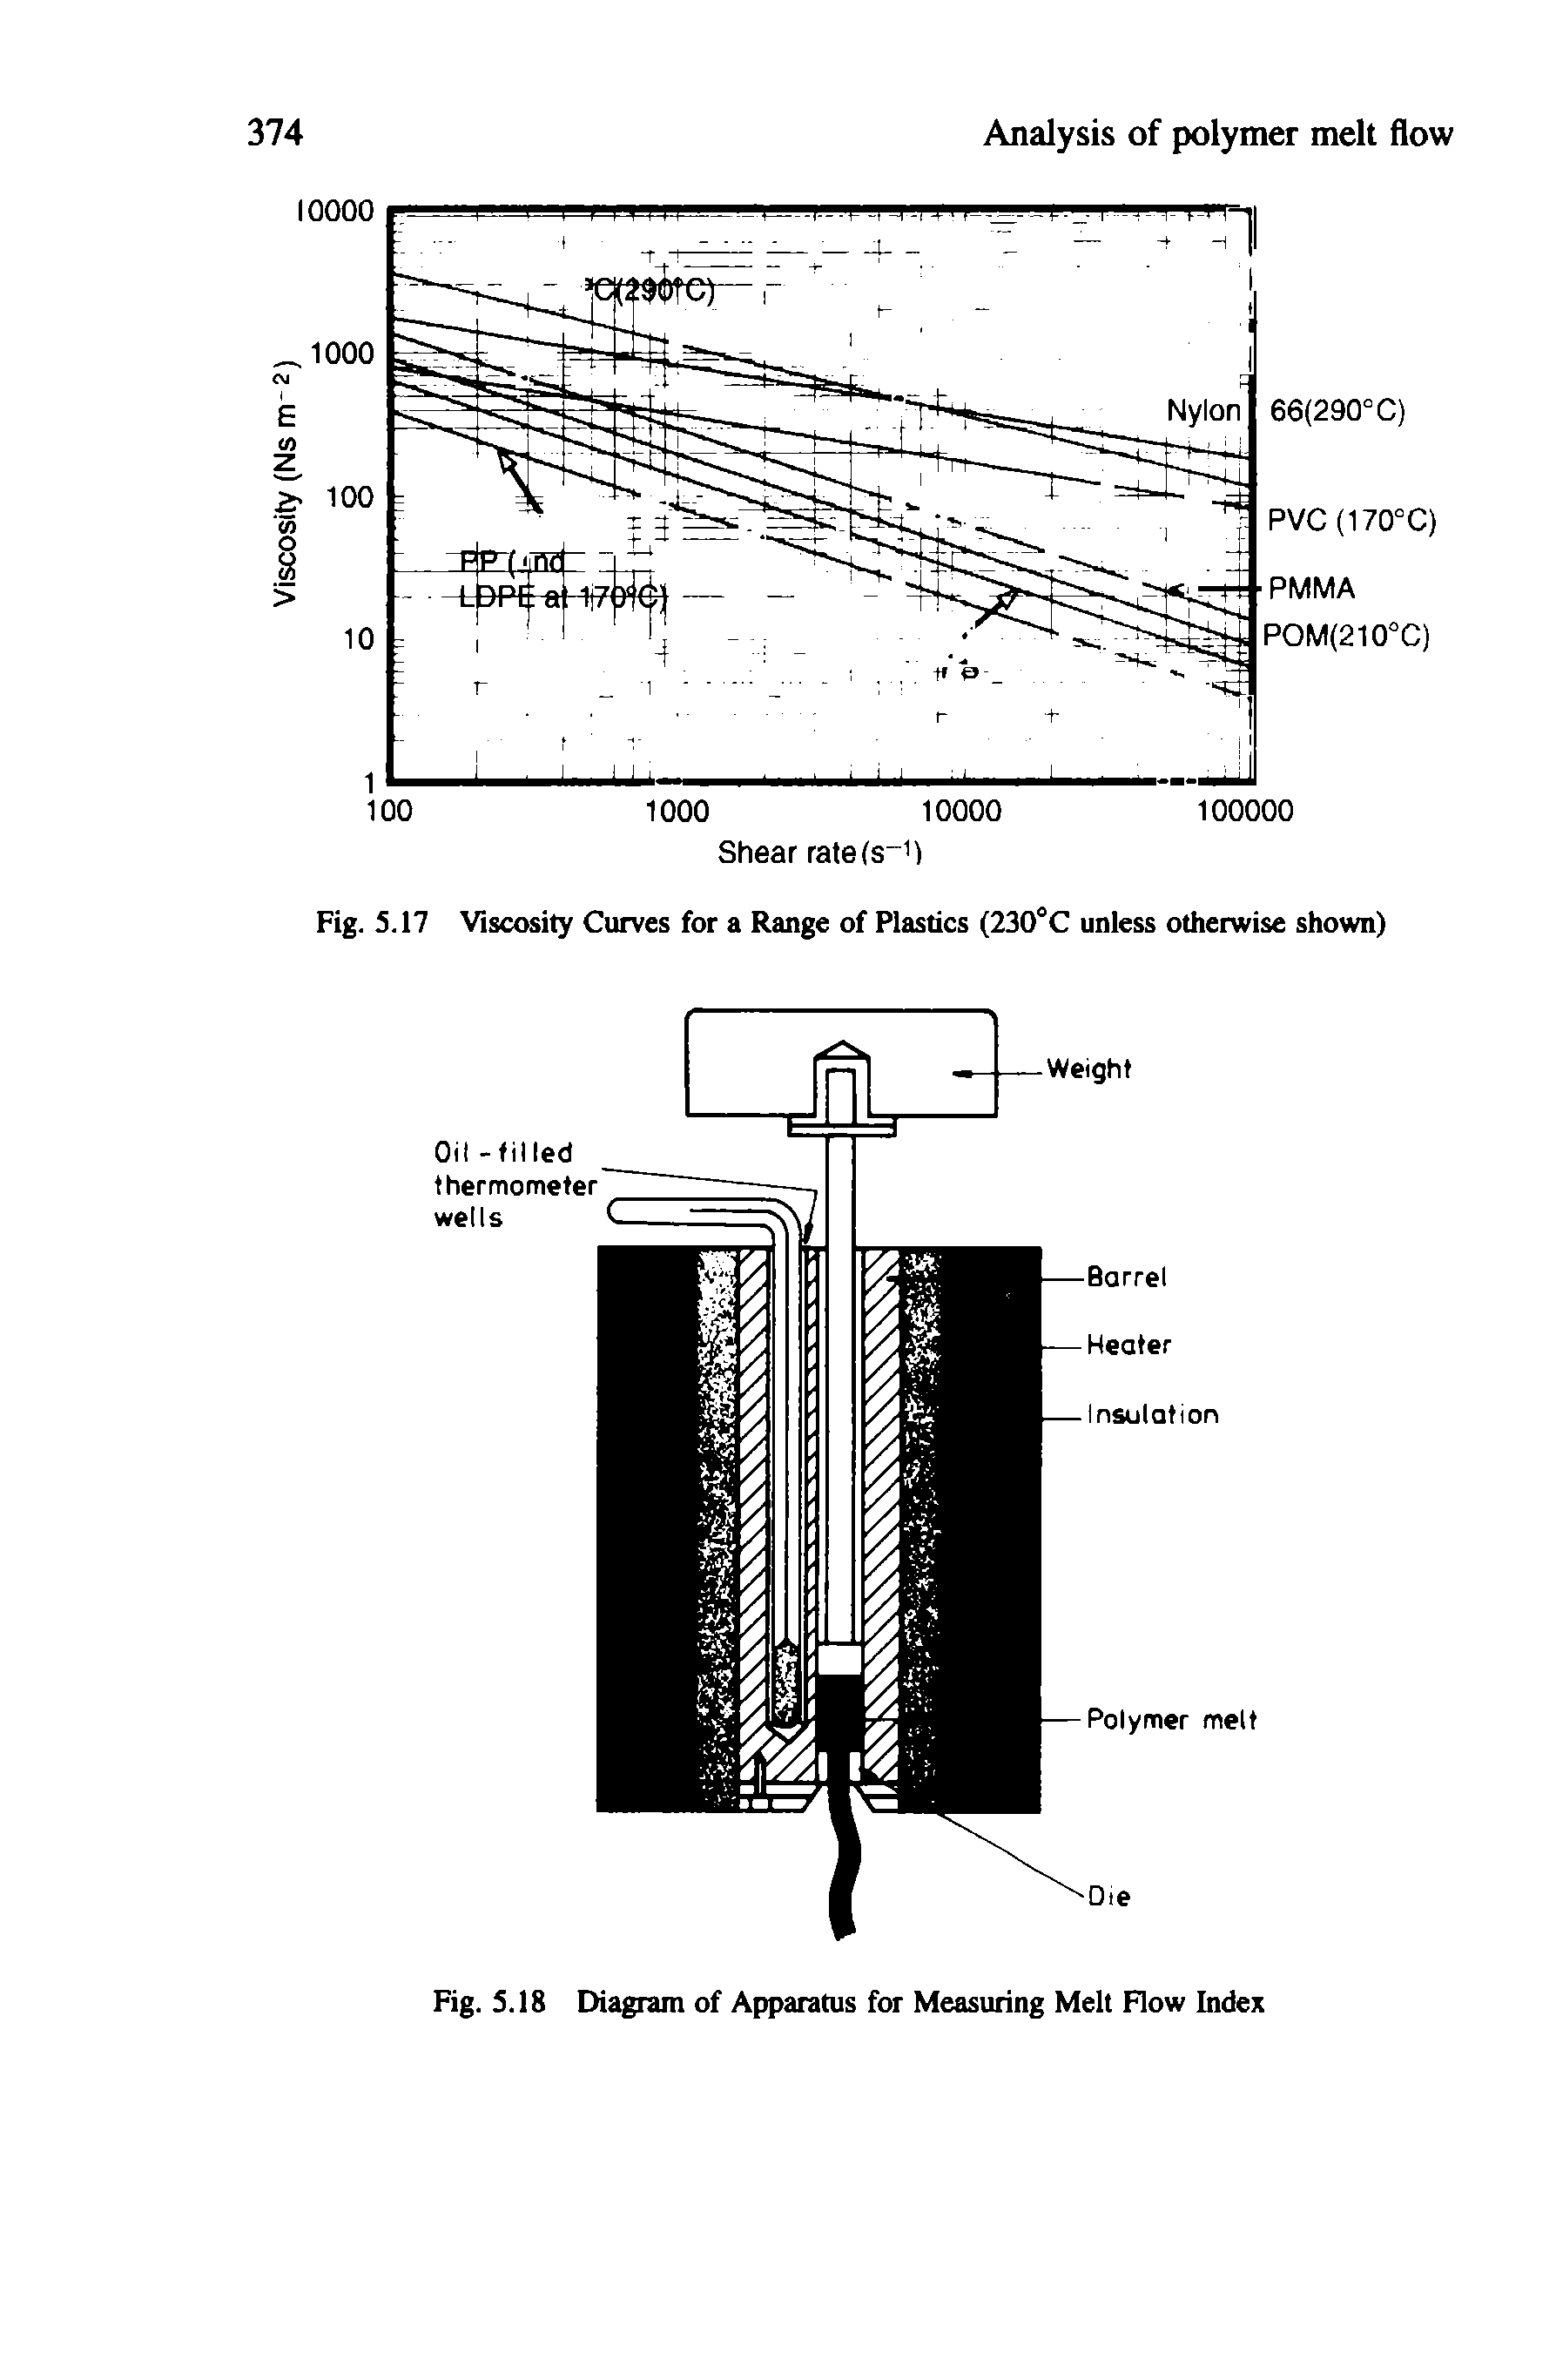 "Fig. 5.18 Diagram of Apparatus for <a href=""/info/melts_measurement"">Measuring Melt</a> Flow Index"